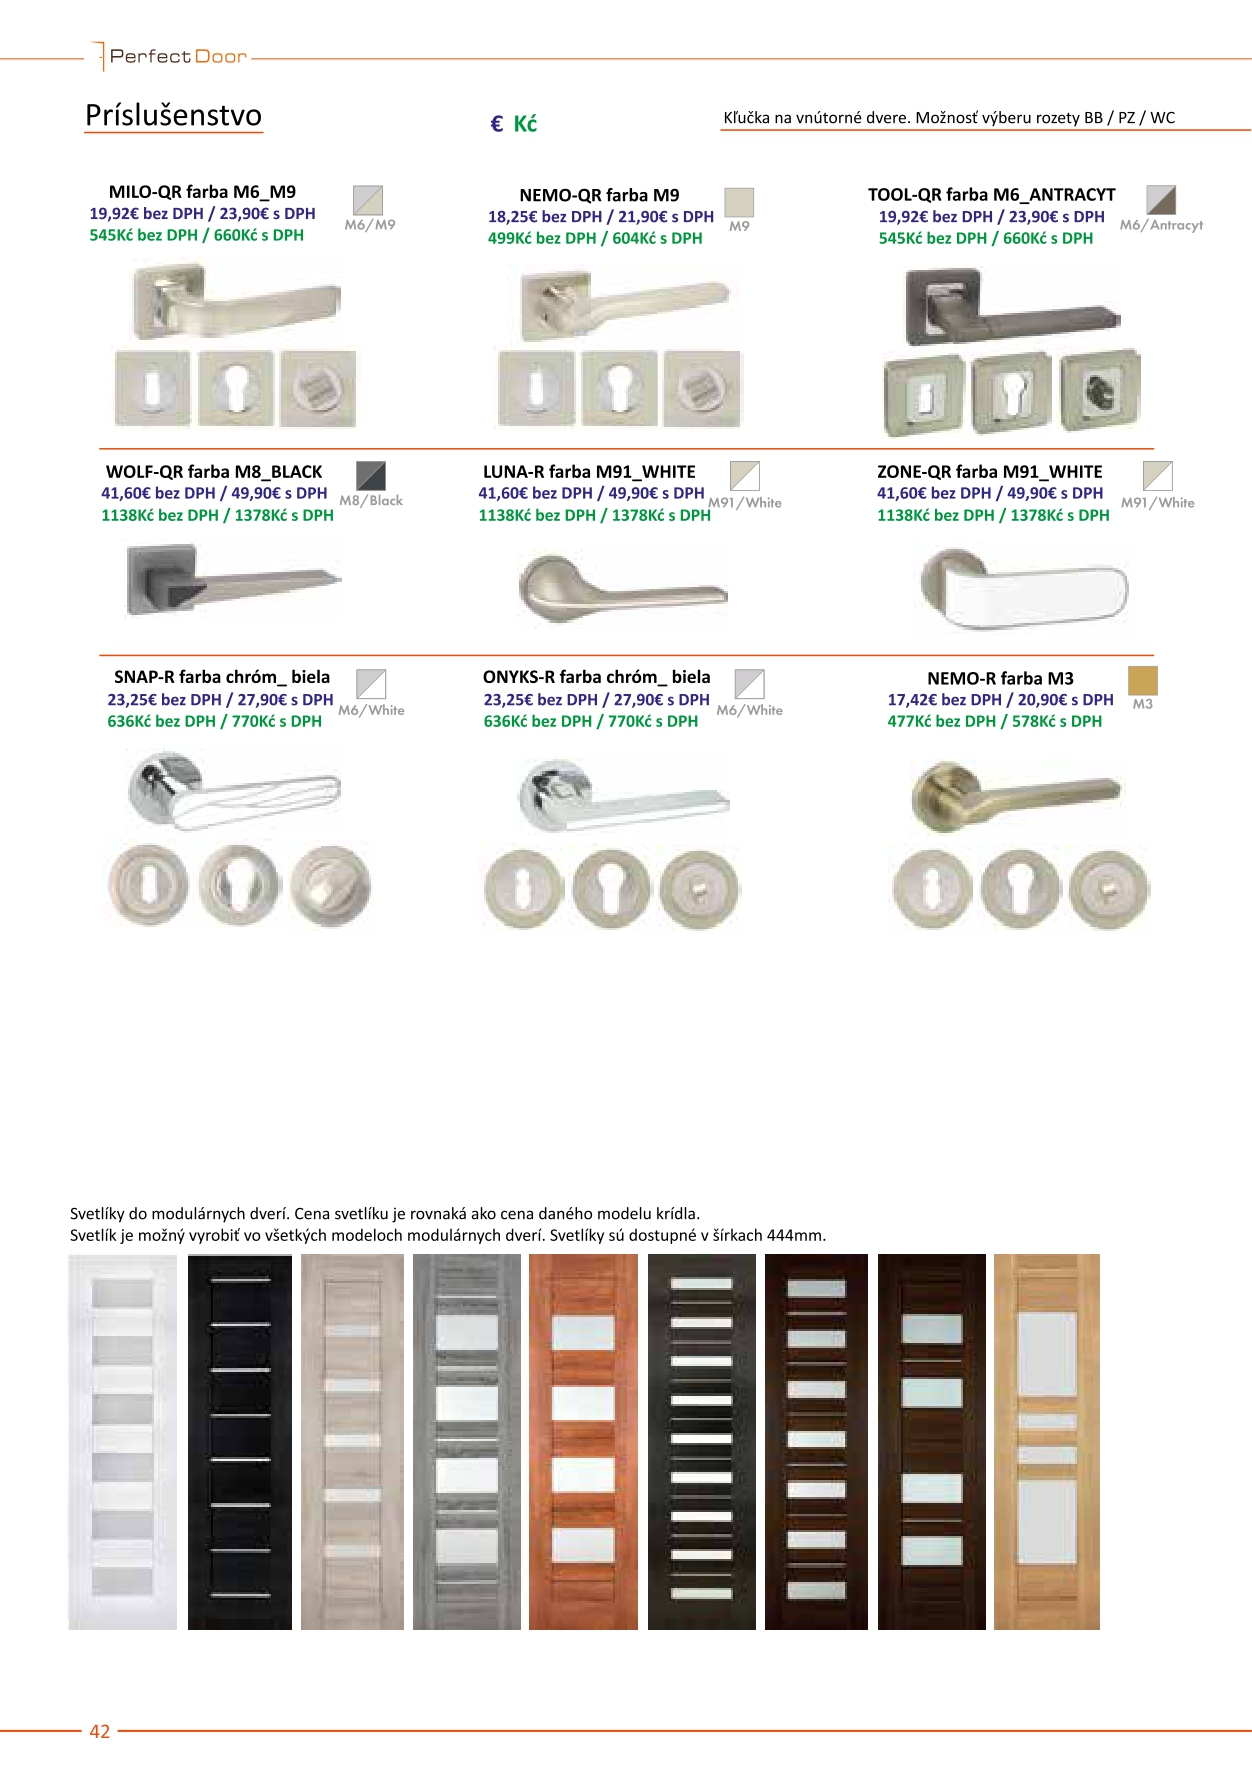 Perfectdoor katalog  1 2019 pages-to-jpg-0042